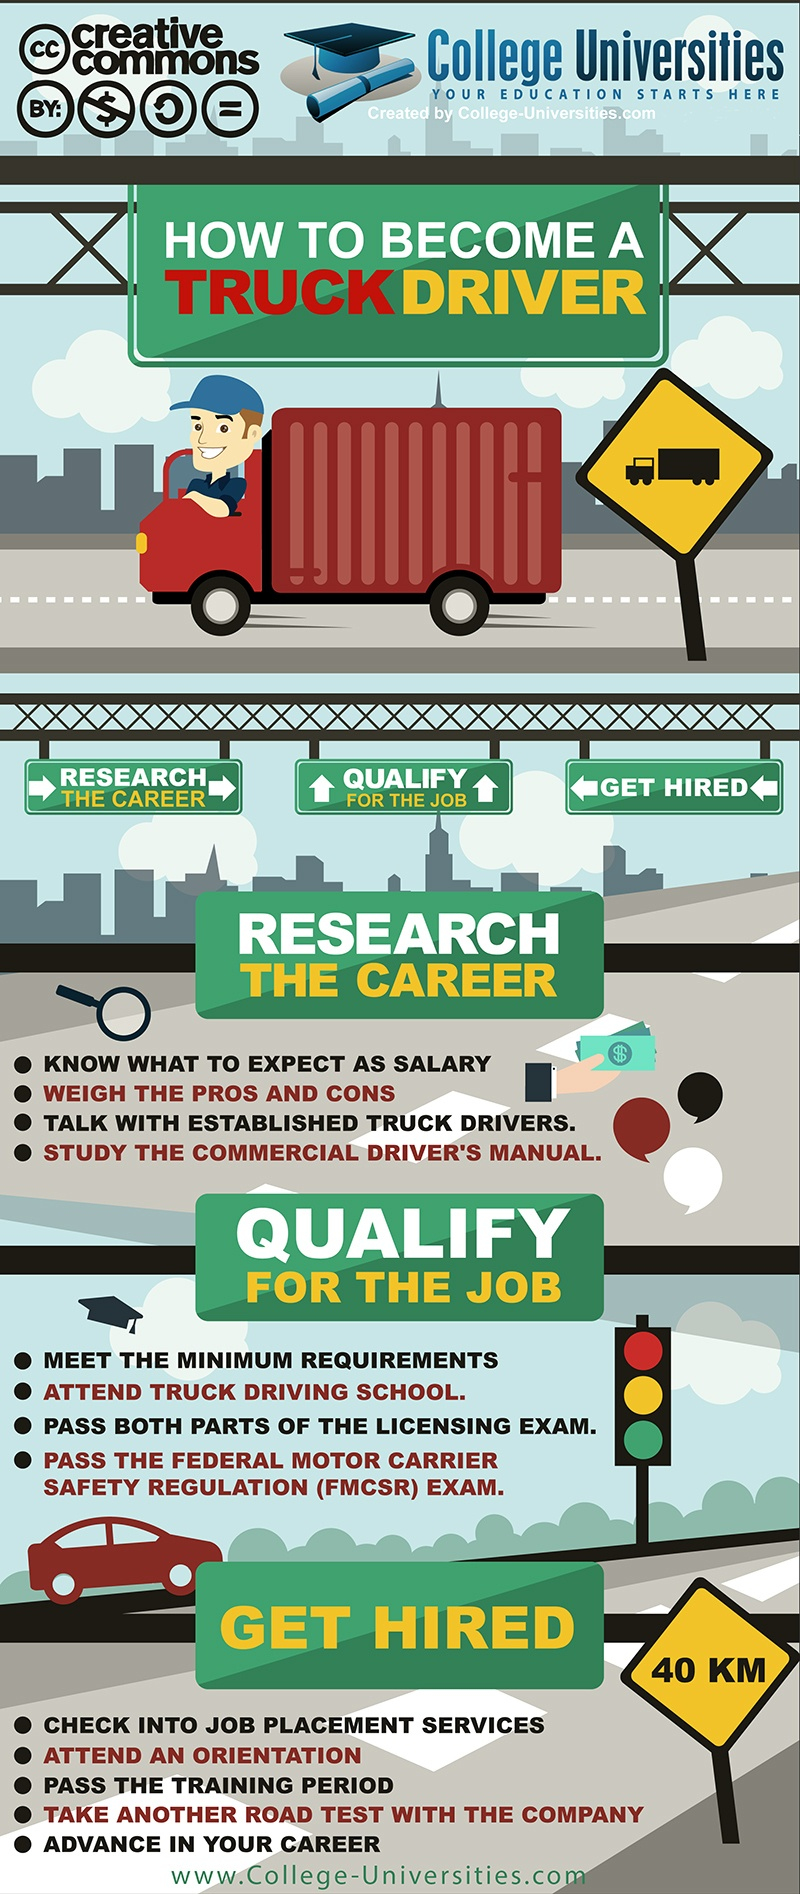 Learn to Become a Truck Driver Infographic